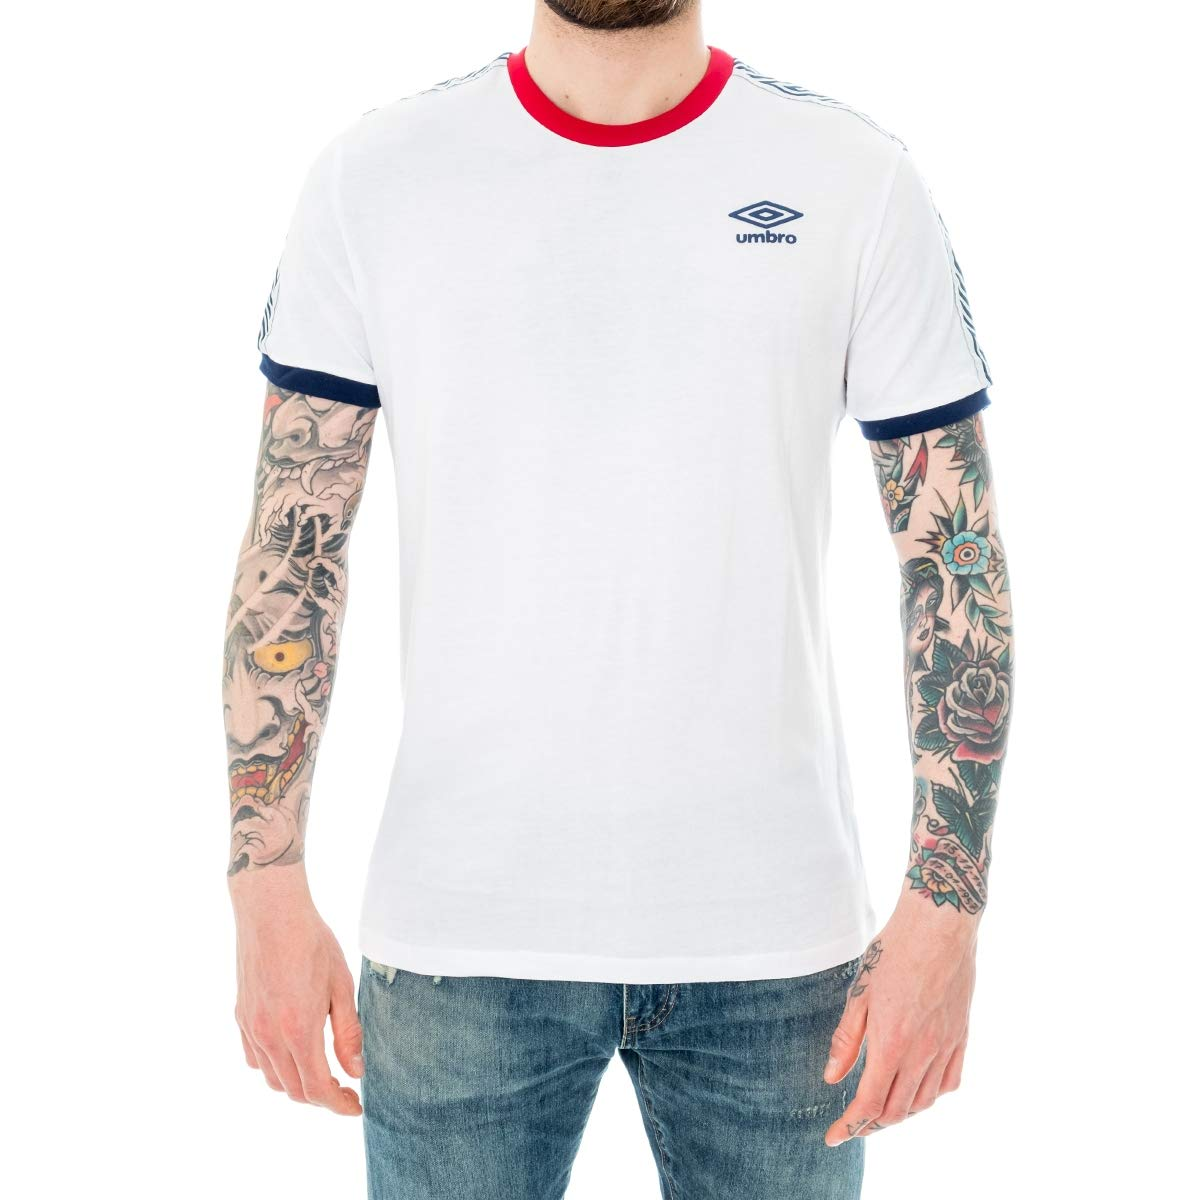 Umbro T-Shirt UOMO RAP00082B.Wht (L - Bianco): Amazon.es: Ropa y ...